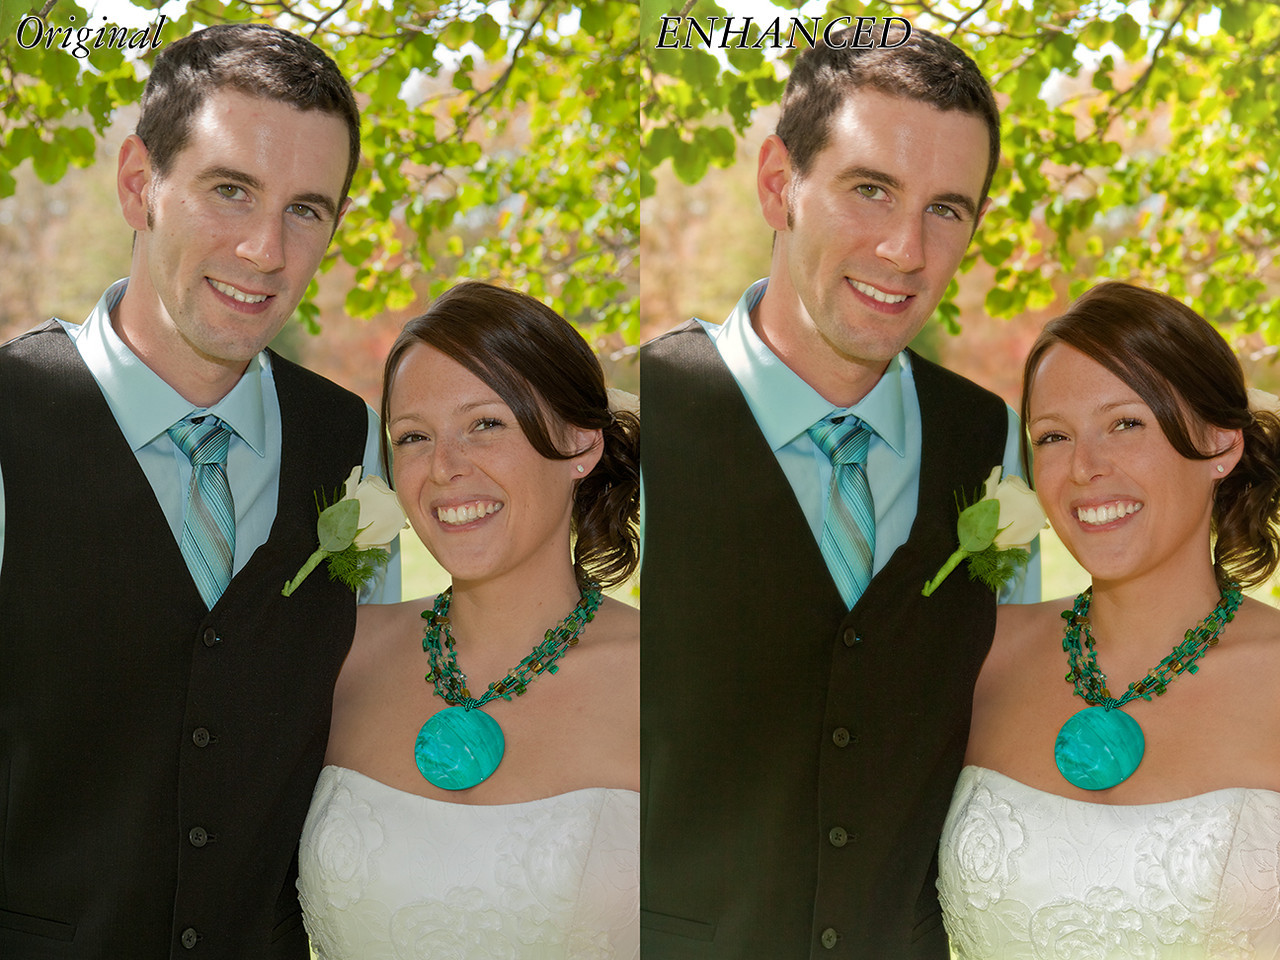 It's a little hard to see some of the changes in this one in a side by side resolution, but many of them are easy to see. First, I lightened the overall forground a bit, whitened and lightened teeth and eyes, and called more detail into the dress. Then I removed many freckles from the bride, and some pimples/spots from the groom. Finally, I enhanced the details and colors of the background.